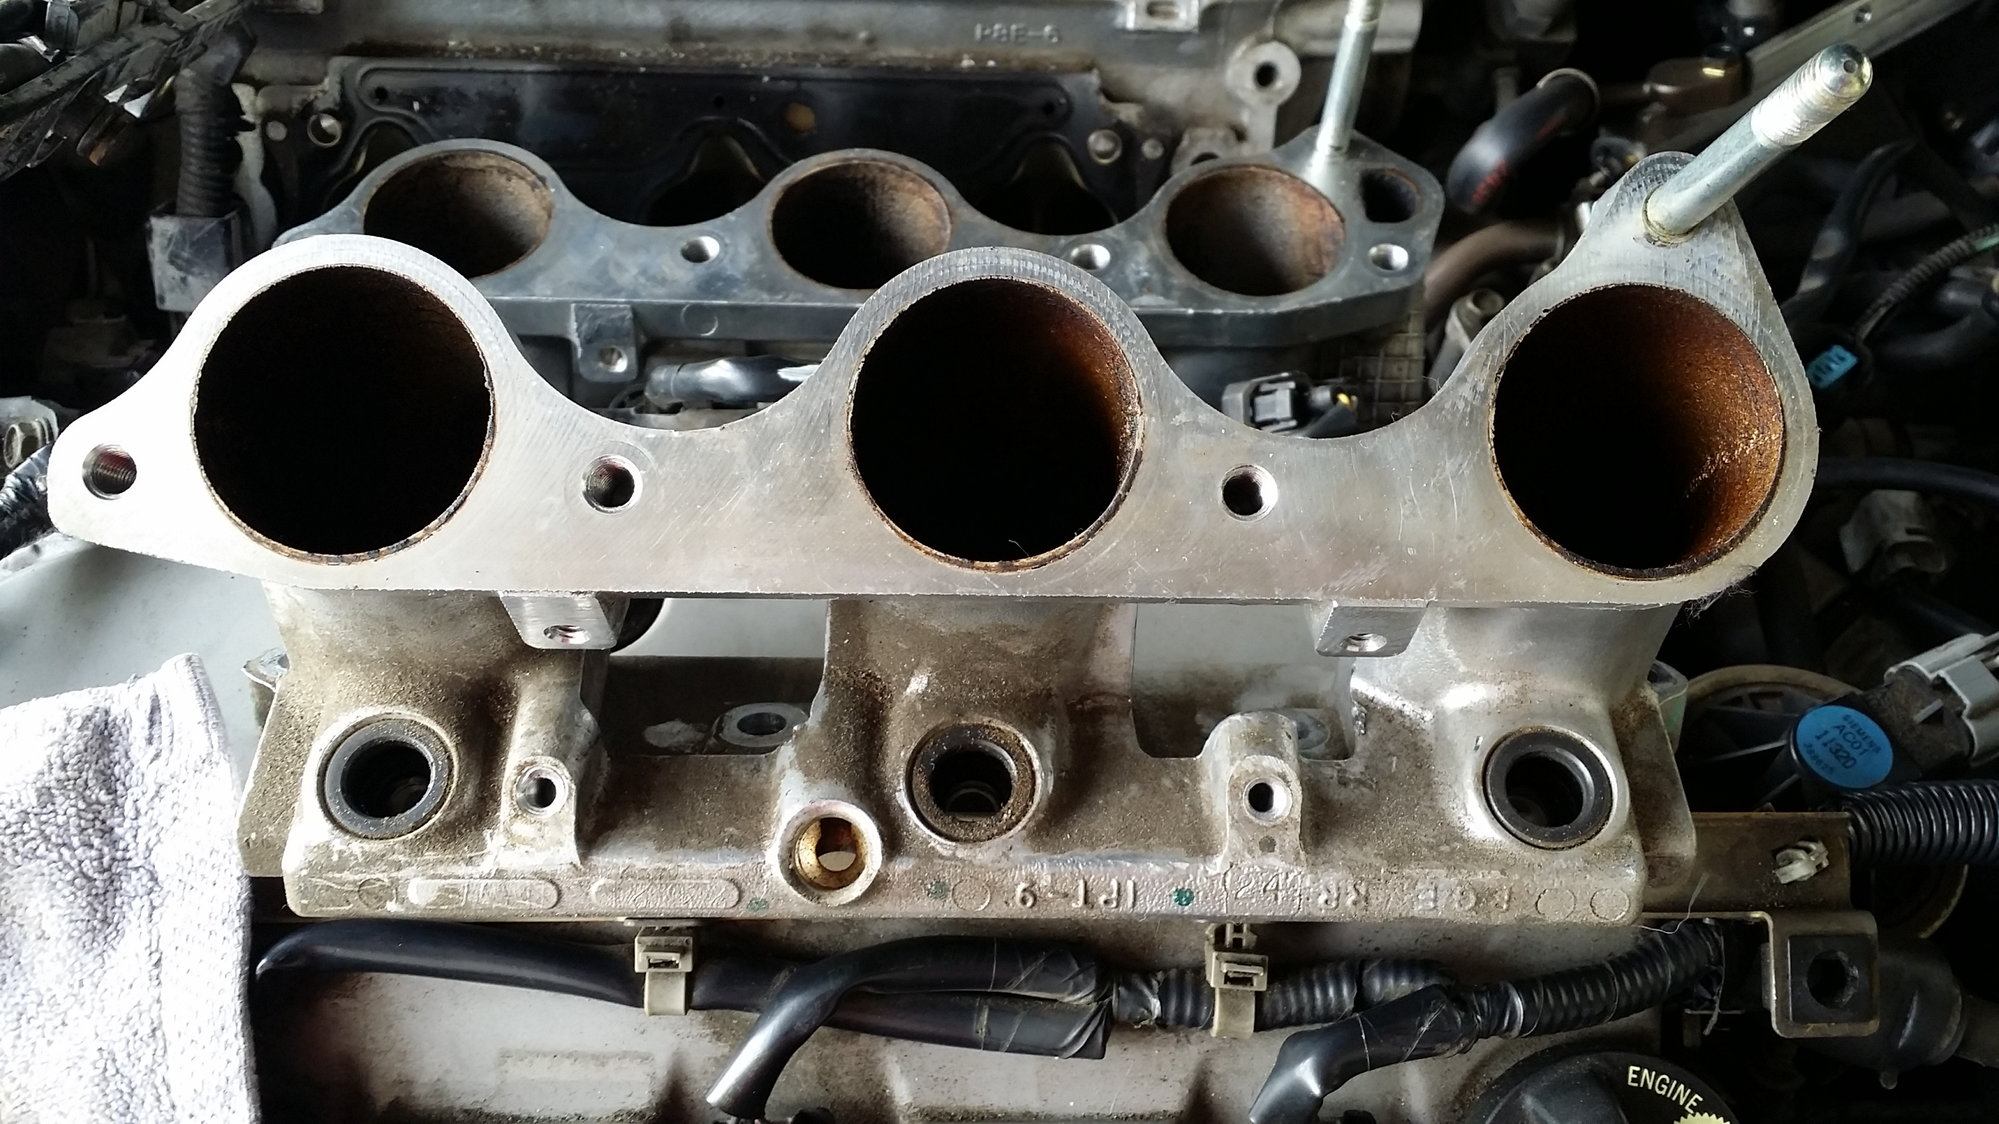 Knock sensor and lower intake manifold removal - AcuraZine